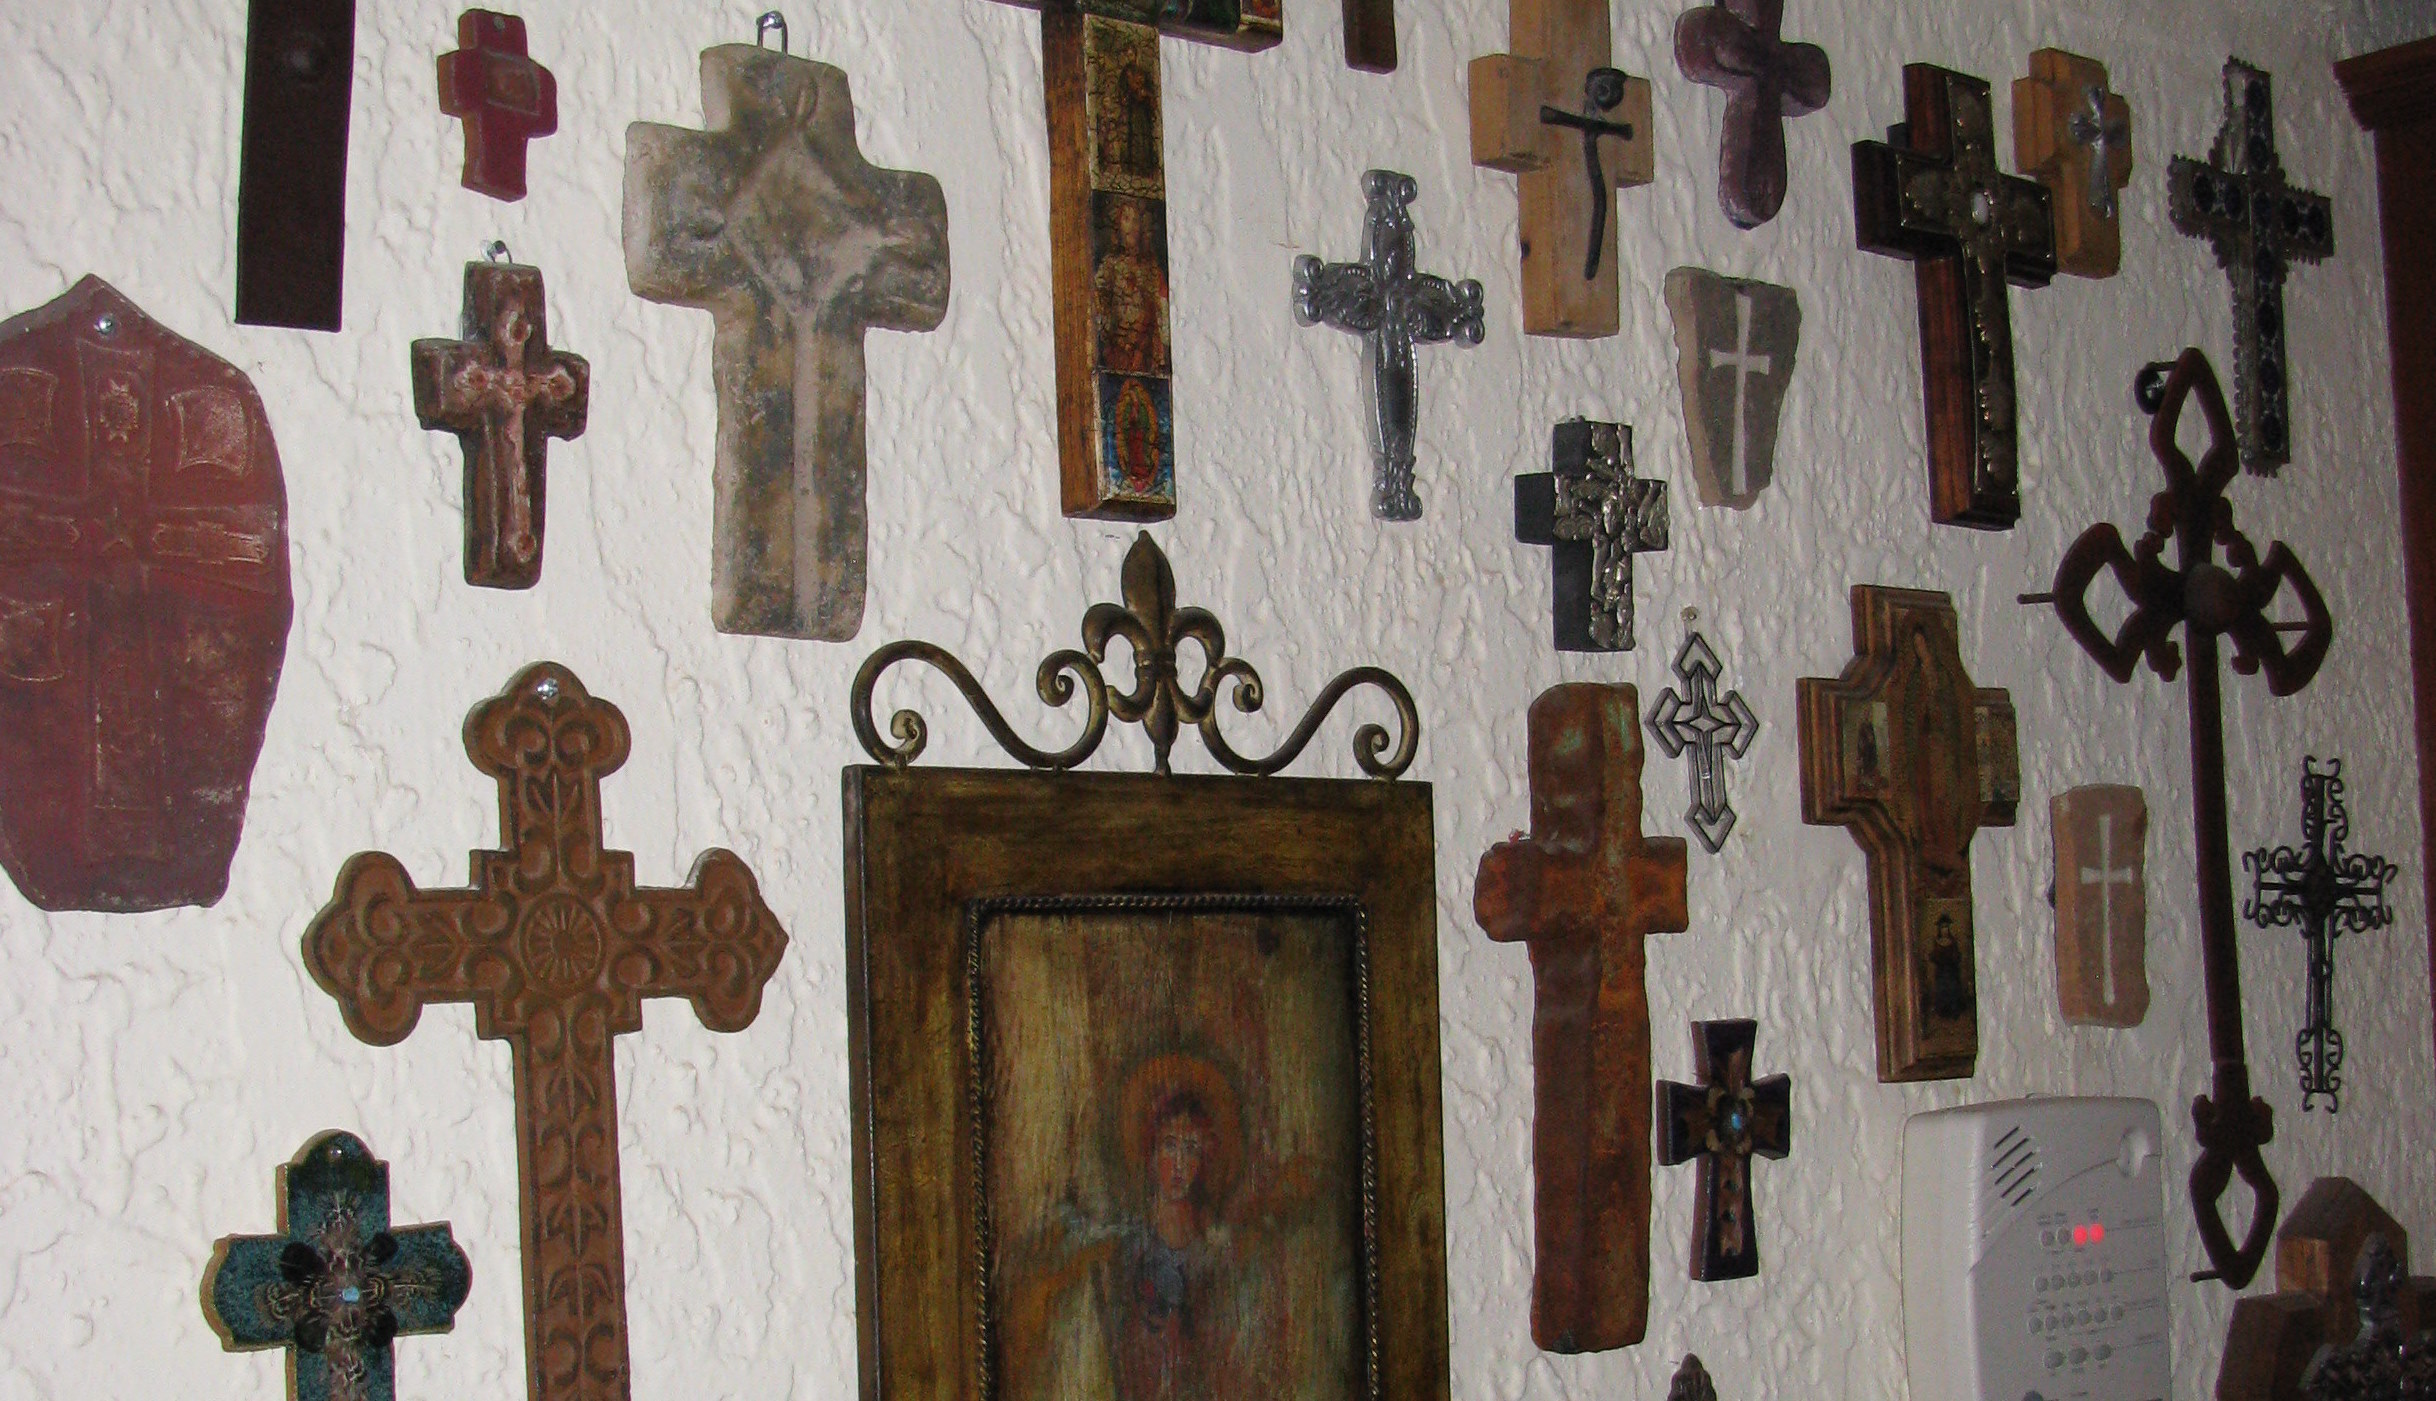 Cross collage wall decor choice image home wall decoration ideas wall cross decor images home wall decoration ideas decorative wall crosses gallery home wall decoration ideas amipublicfo Image collections